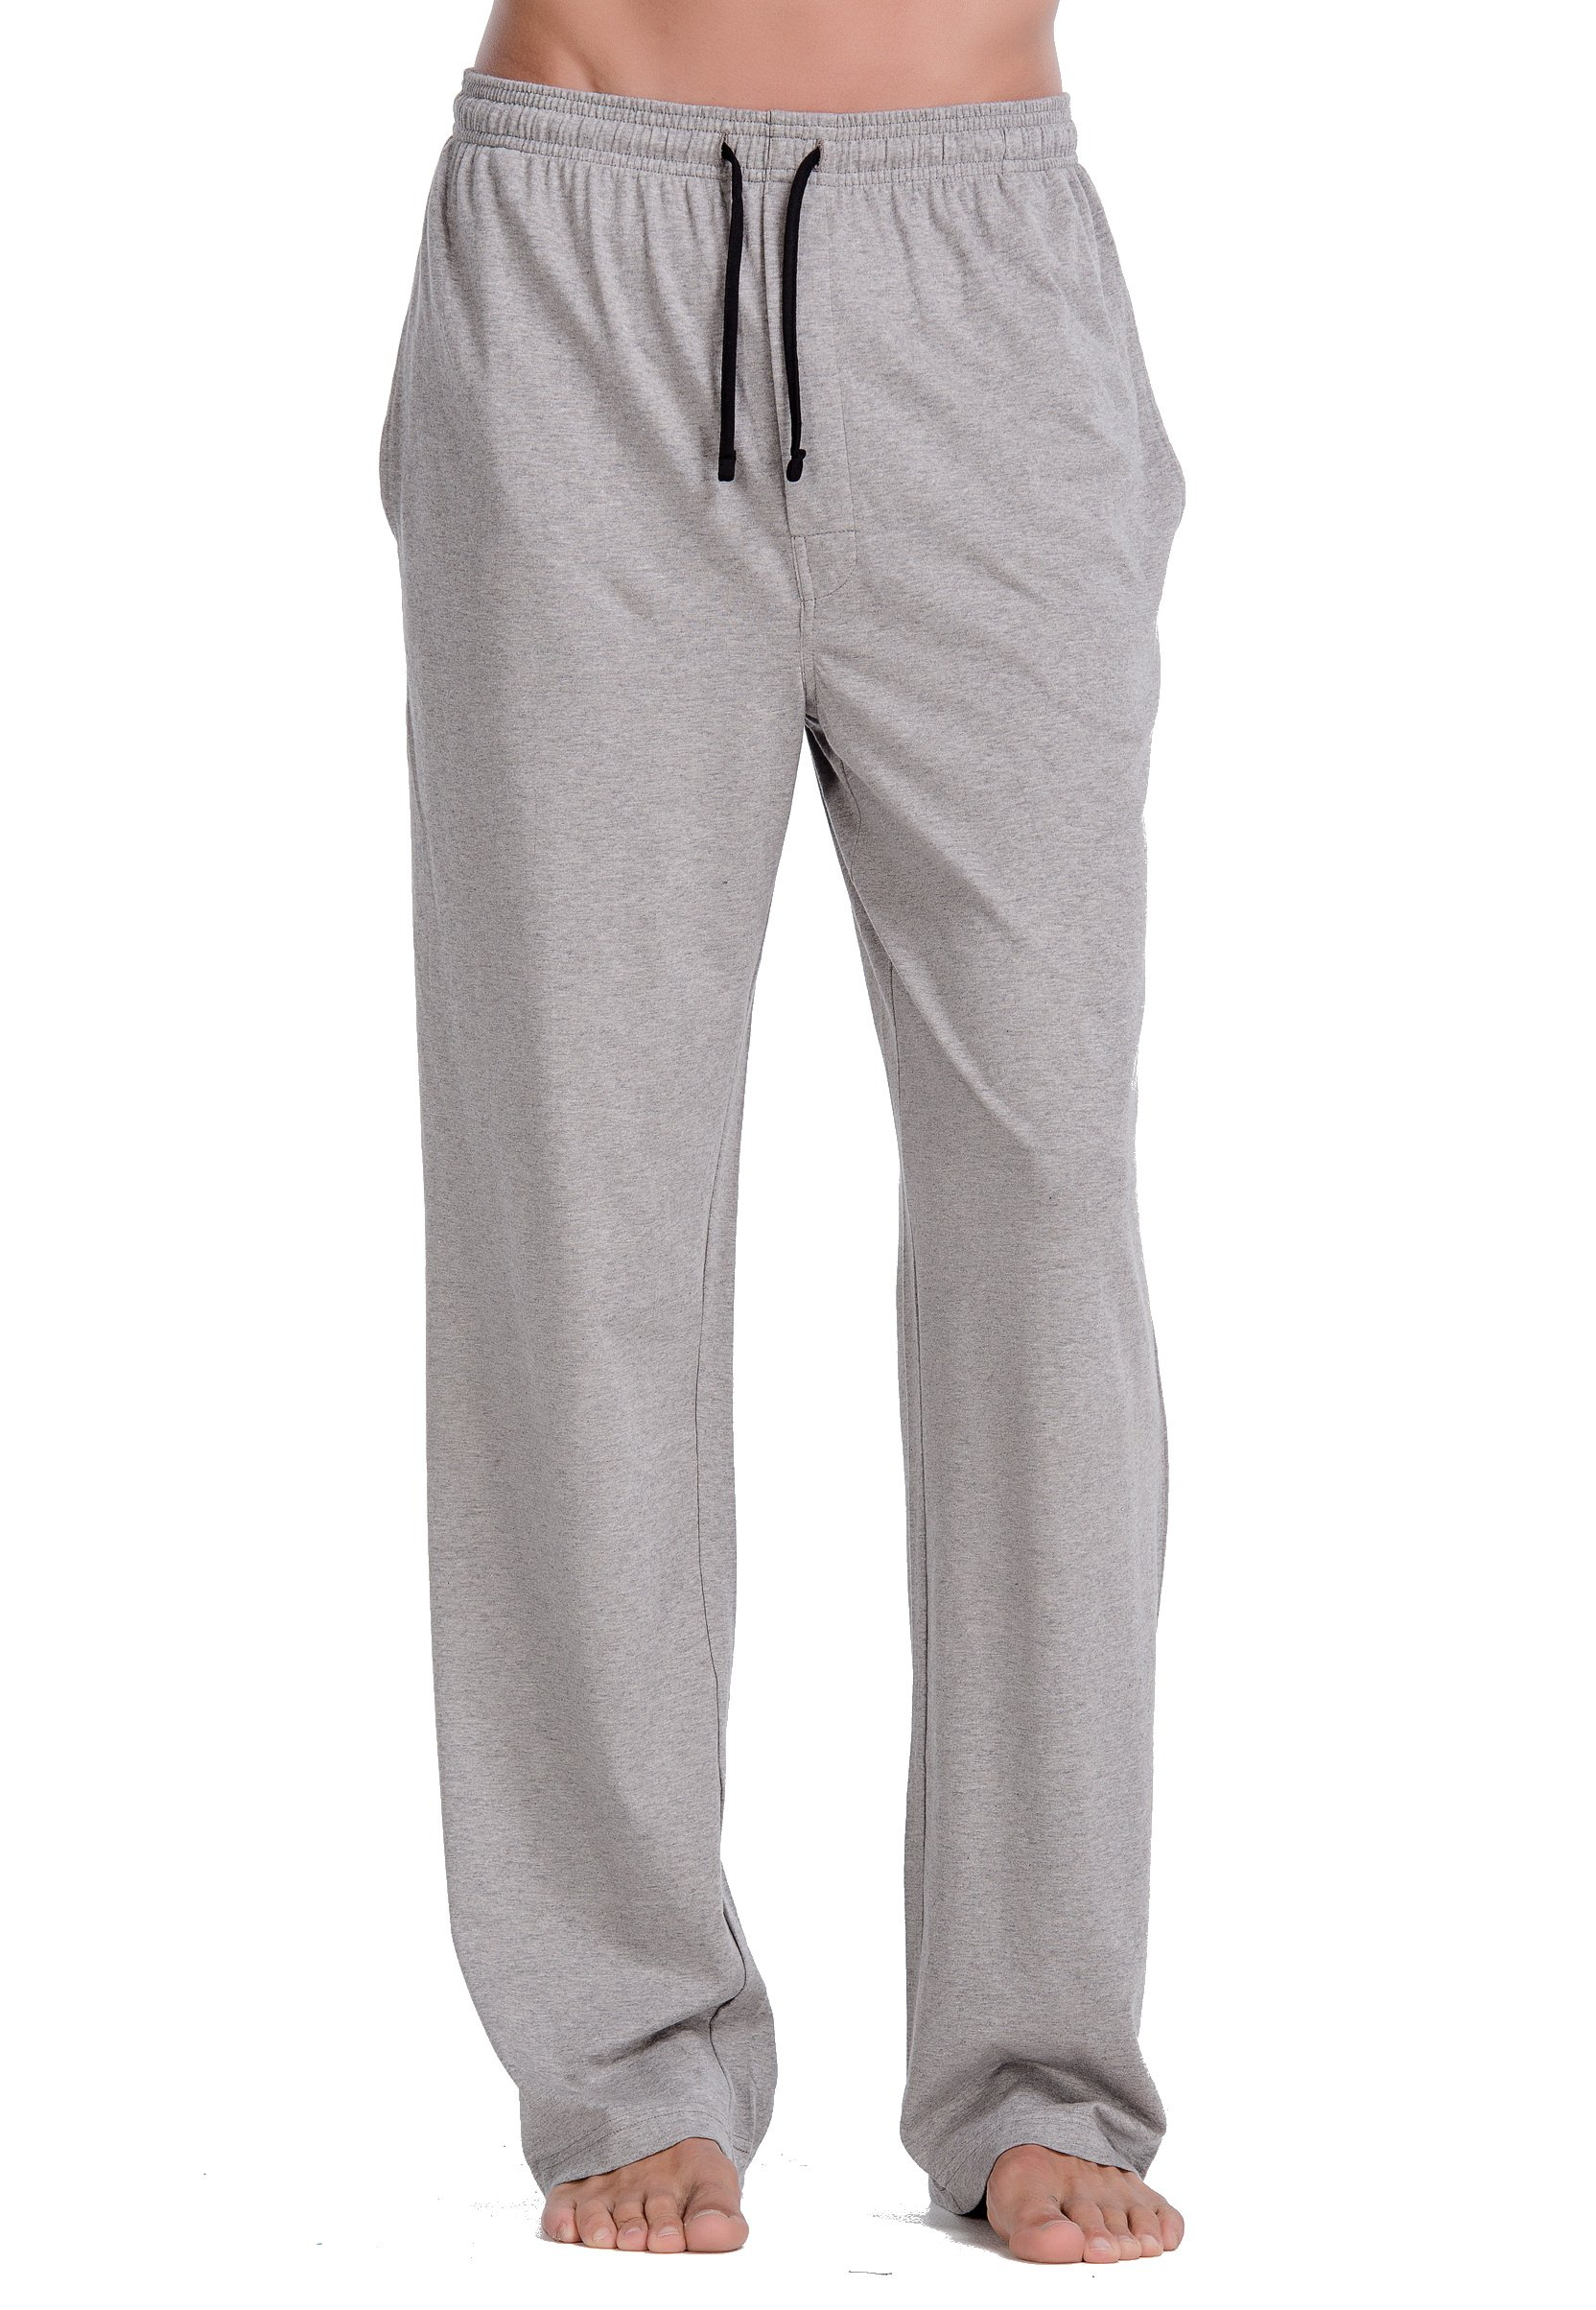 CYZ Comfortable Jersey Cotton Knit Pajama Lounge Sleep Pants -Melange Grey-M